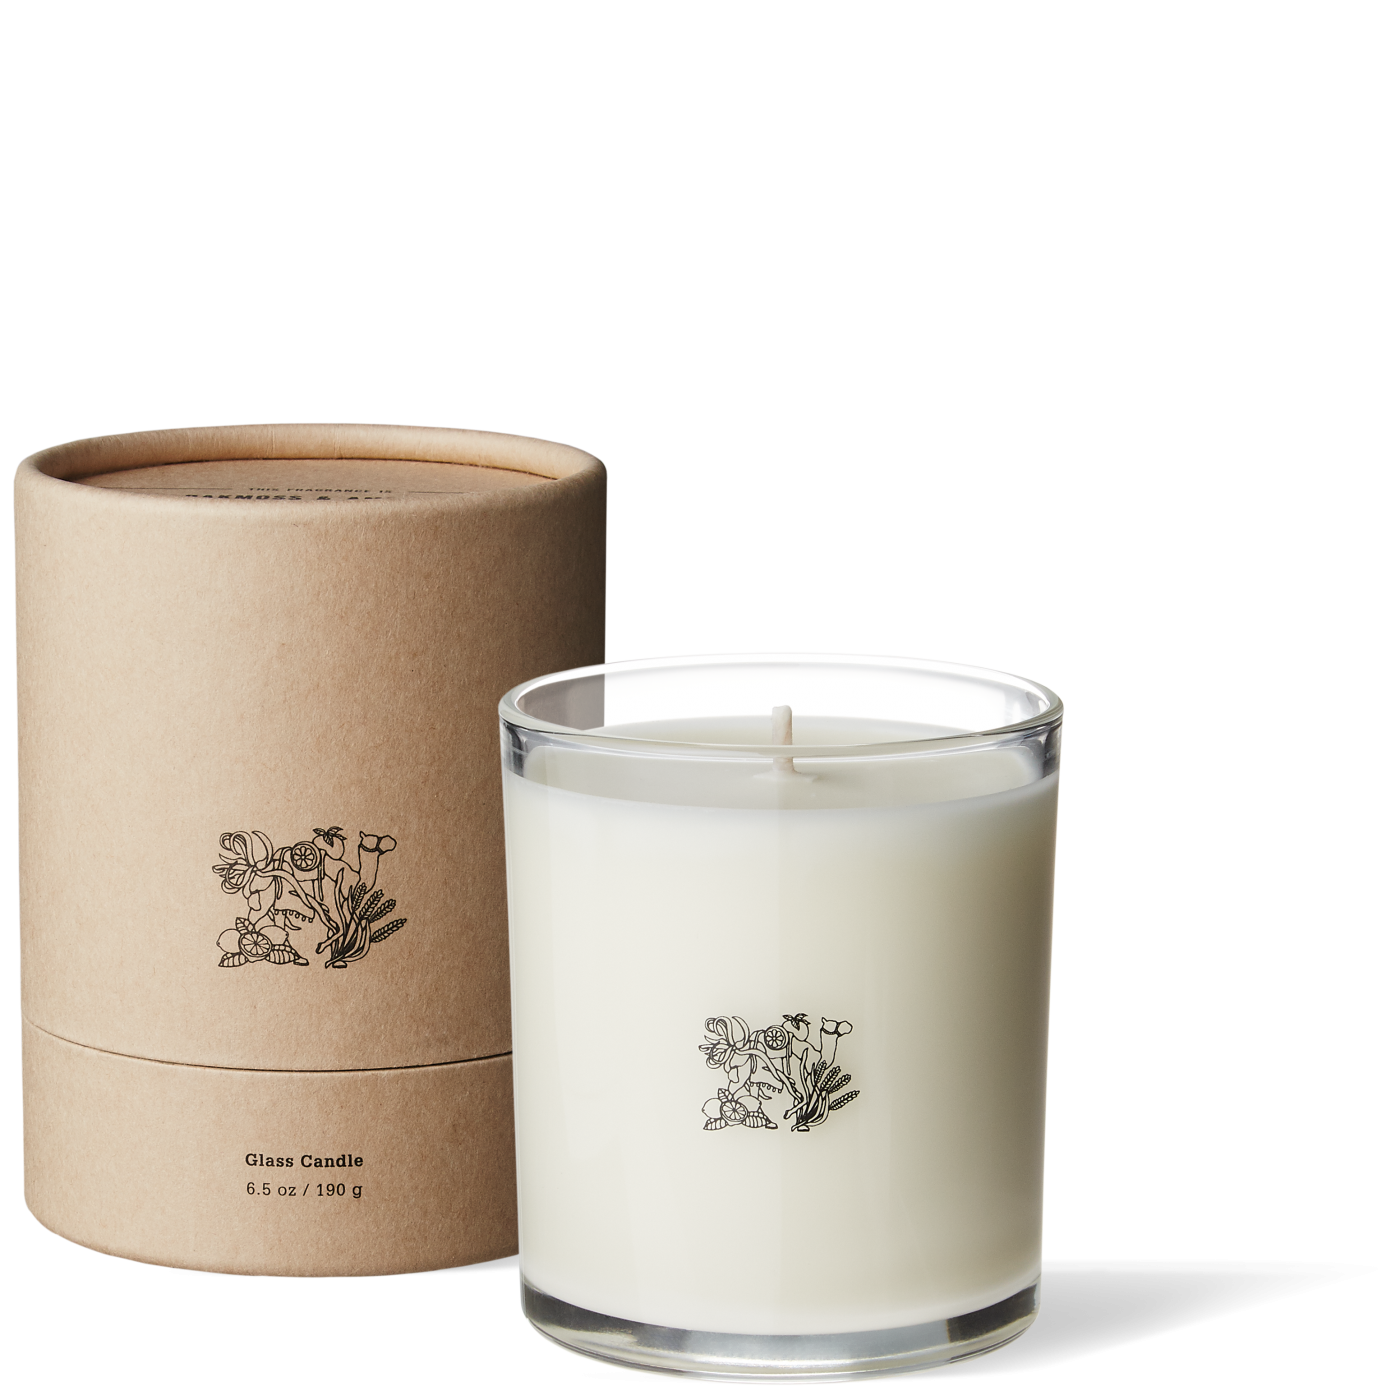 <img class='new_mark_img1' src='https://img.shop-pro.jp/img/new/icons56.gif' style='border:none;display:inline;margin:0px;padding:0px;width:auto;' />APOTHEKE FRAGRANCE アポテーケ フレグランス  / GLASS CANDLE